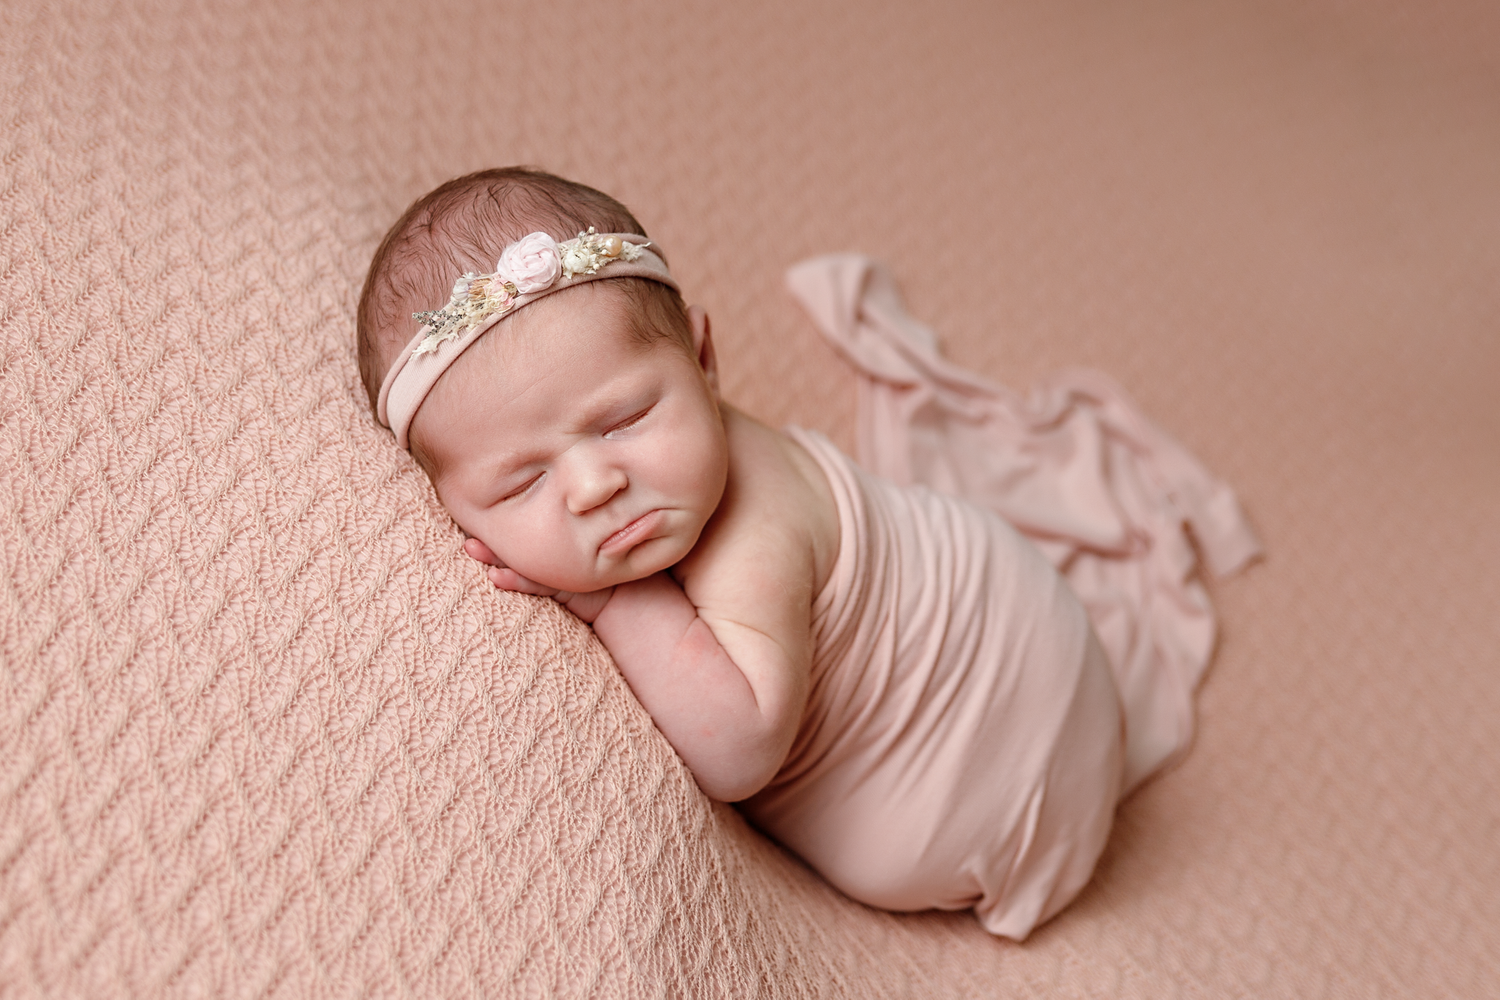 Newborn Photography Portlaoise Laois. Photography Studios. How to book in for a Newborn Session. Heyday Studios.